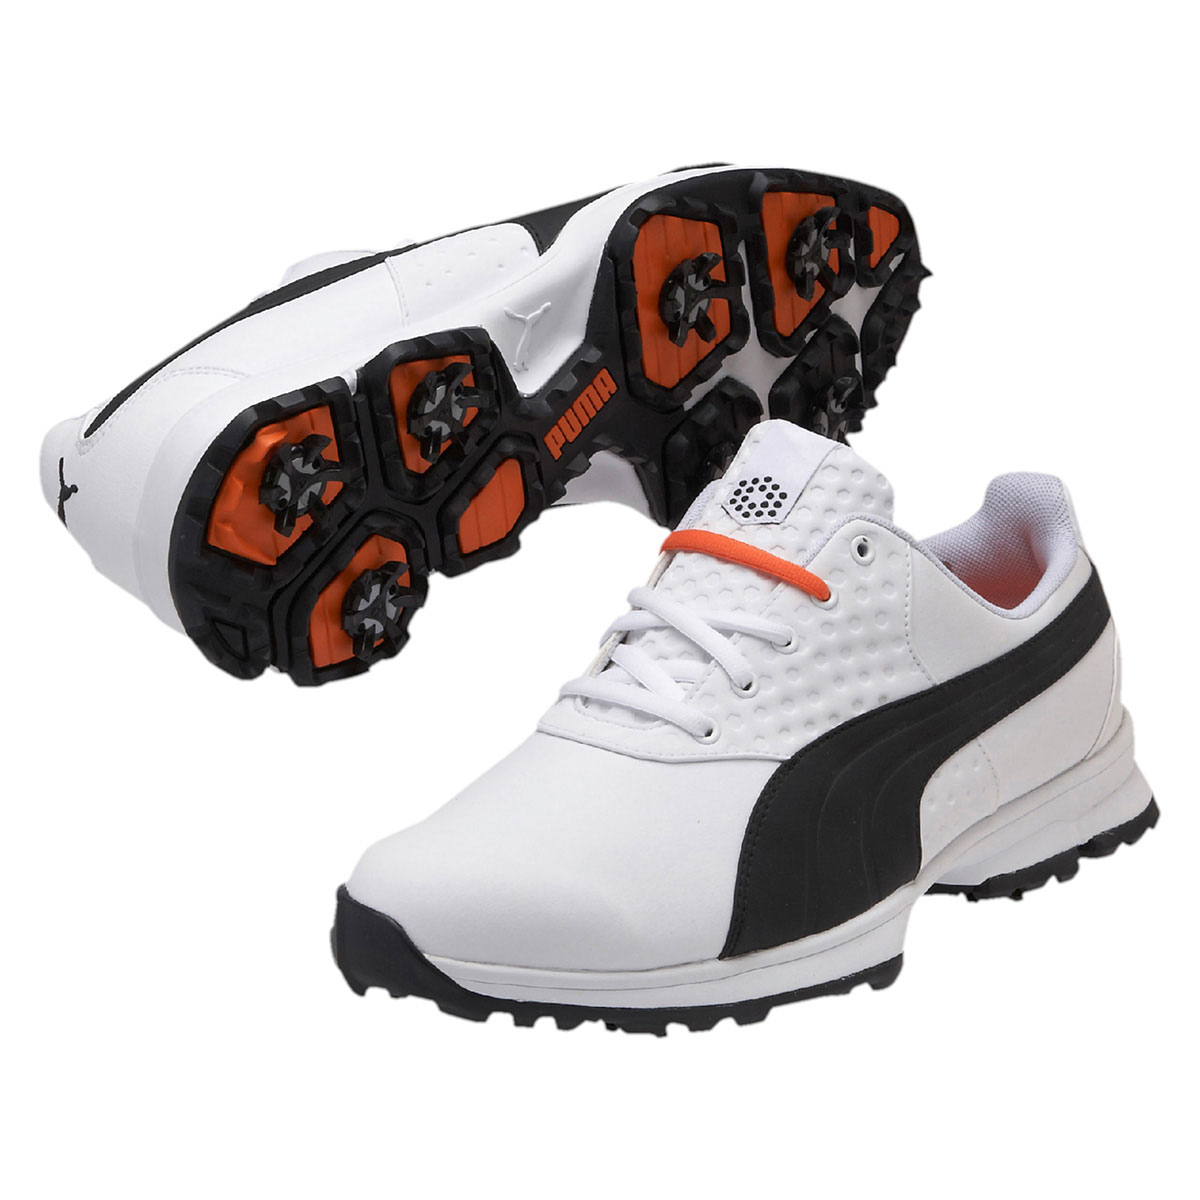 Lightweight Golf Shoes Reviews